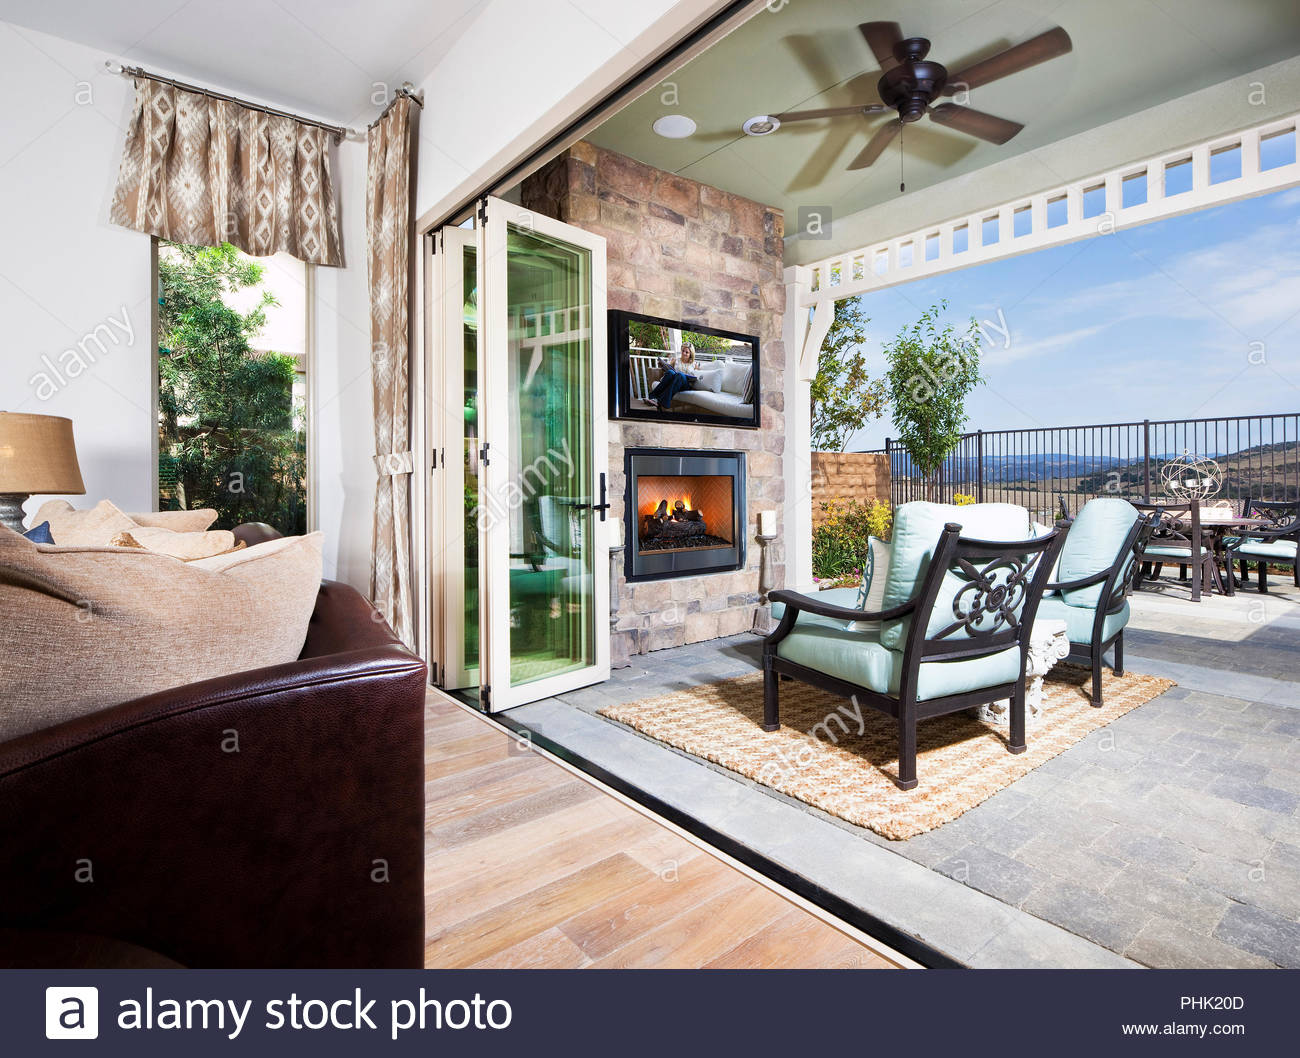 Fireplace and television on patio - Stock Image